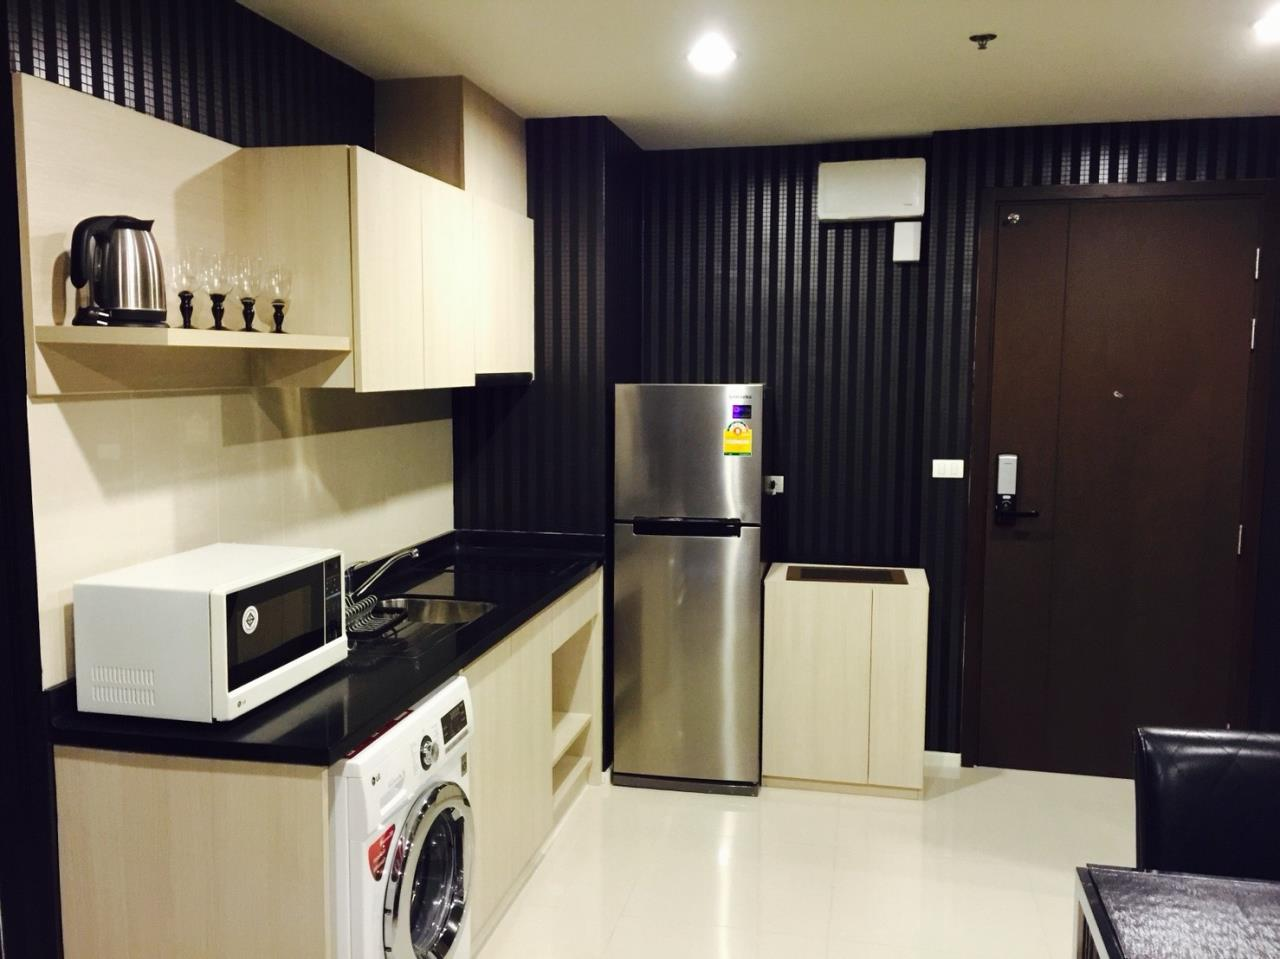 Quality Life Property Agency's S A L E WITH TENANT < Rhythm Sathorn - Narathiwas > 2BR 60.7 SQ.M. NICE DECORATION 4